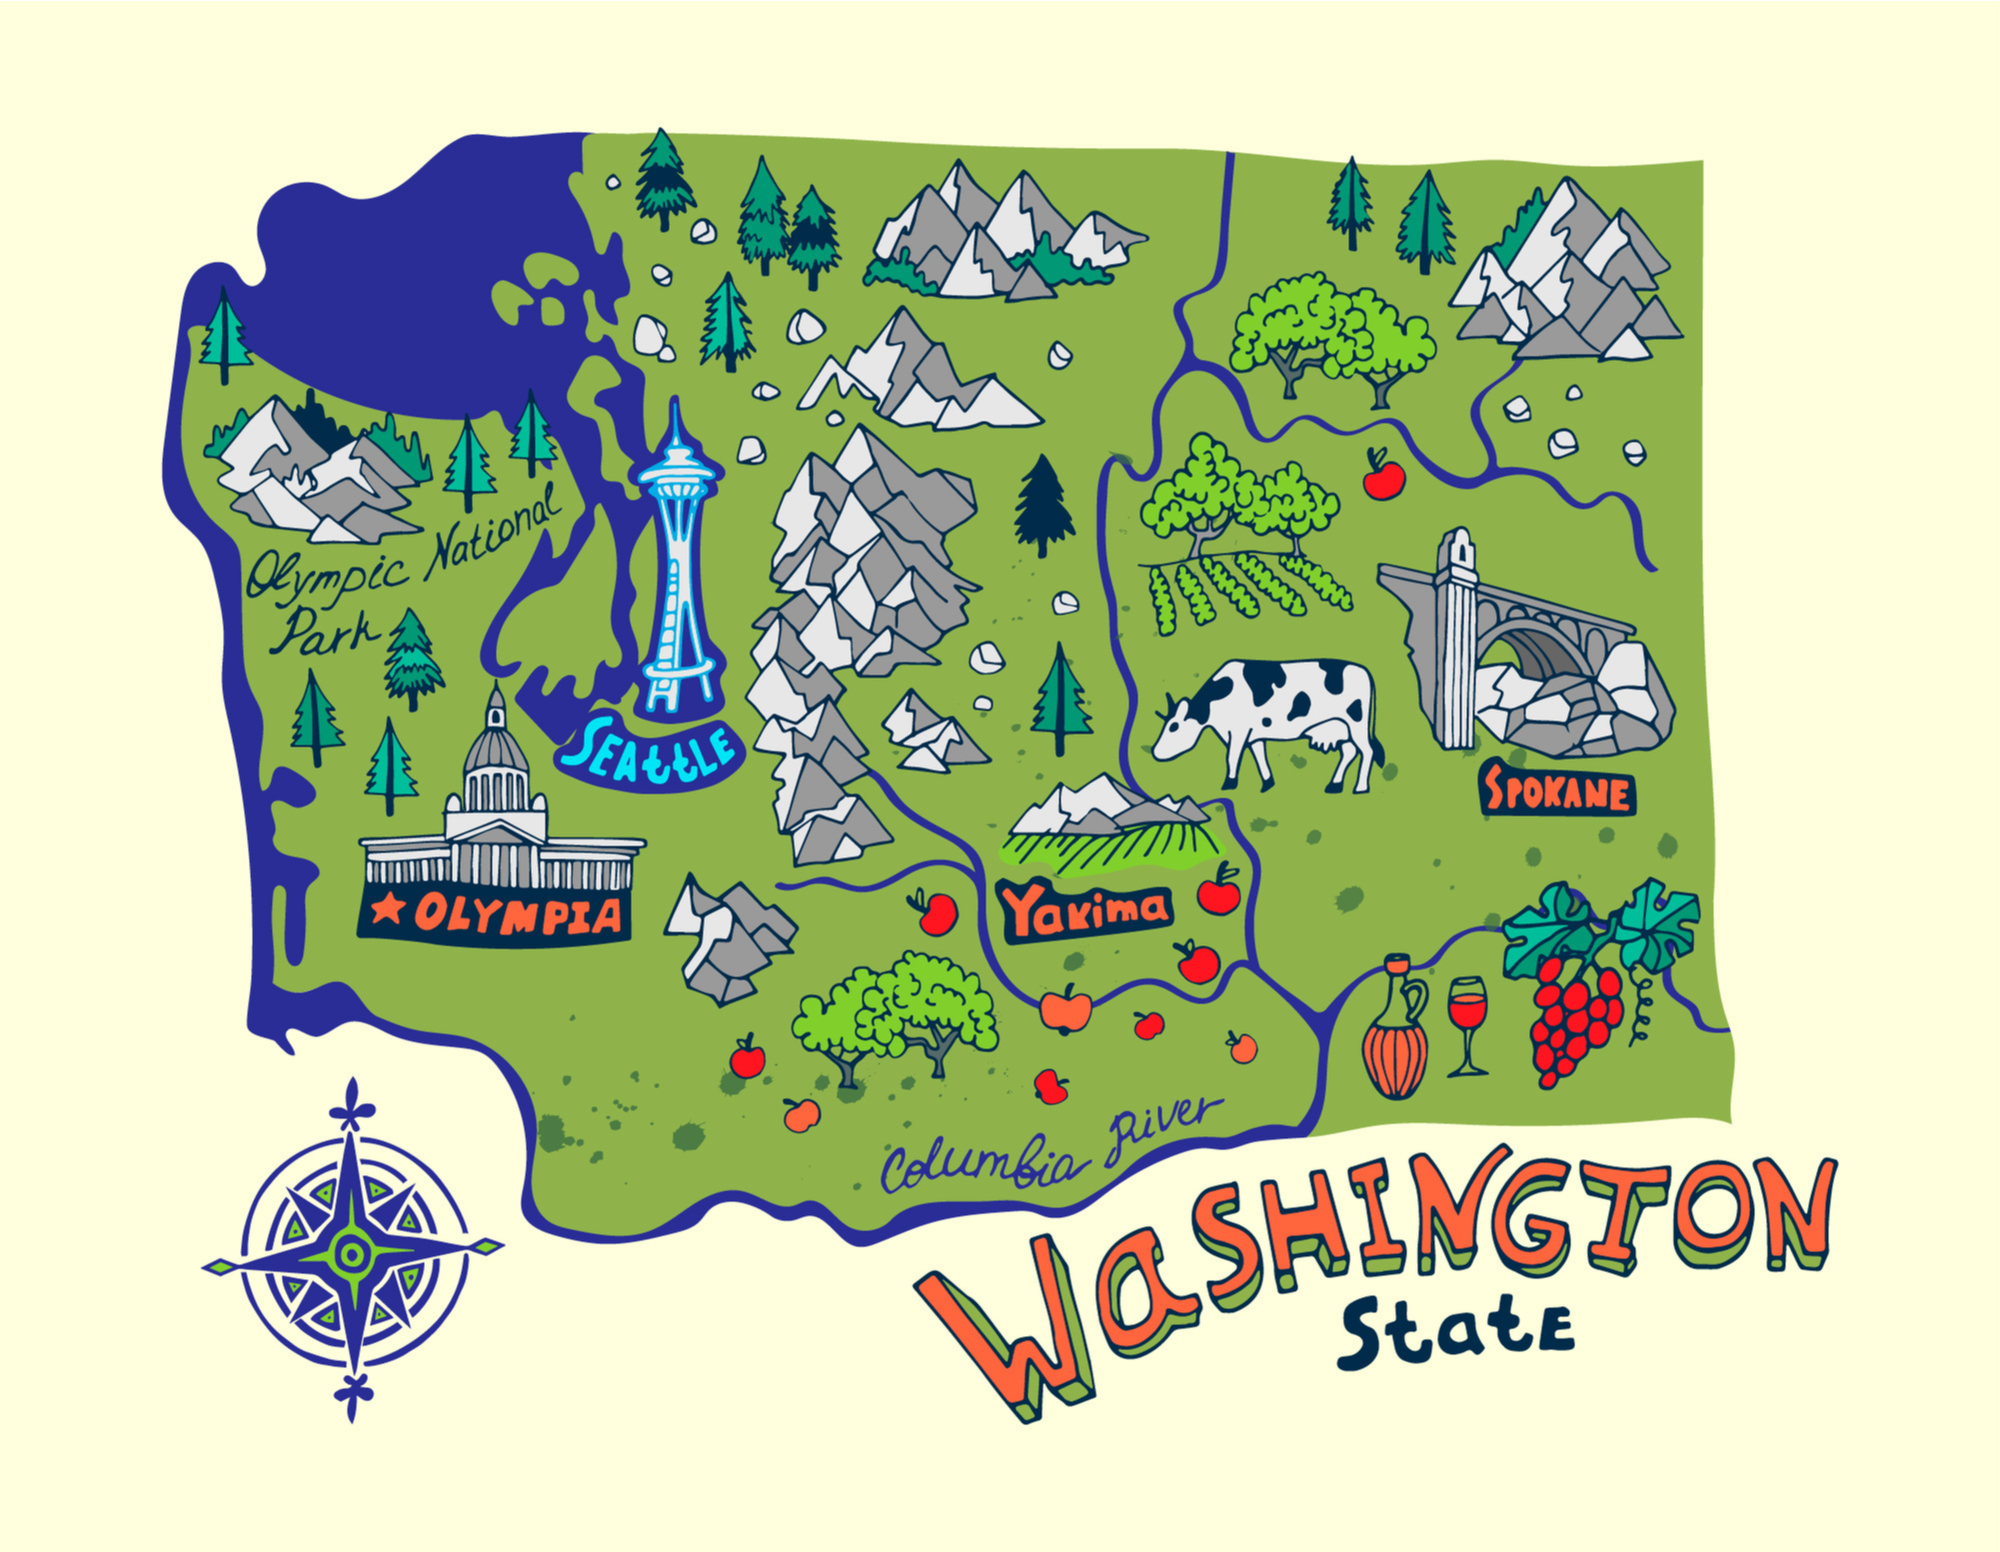 Washington medical marijuana card